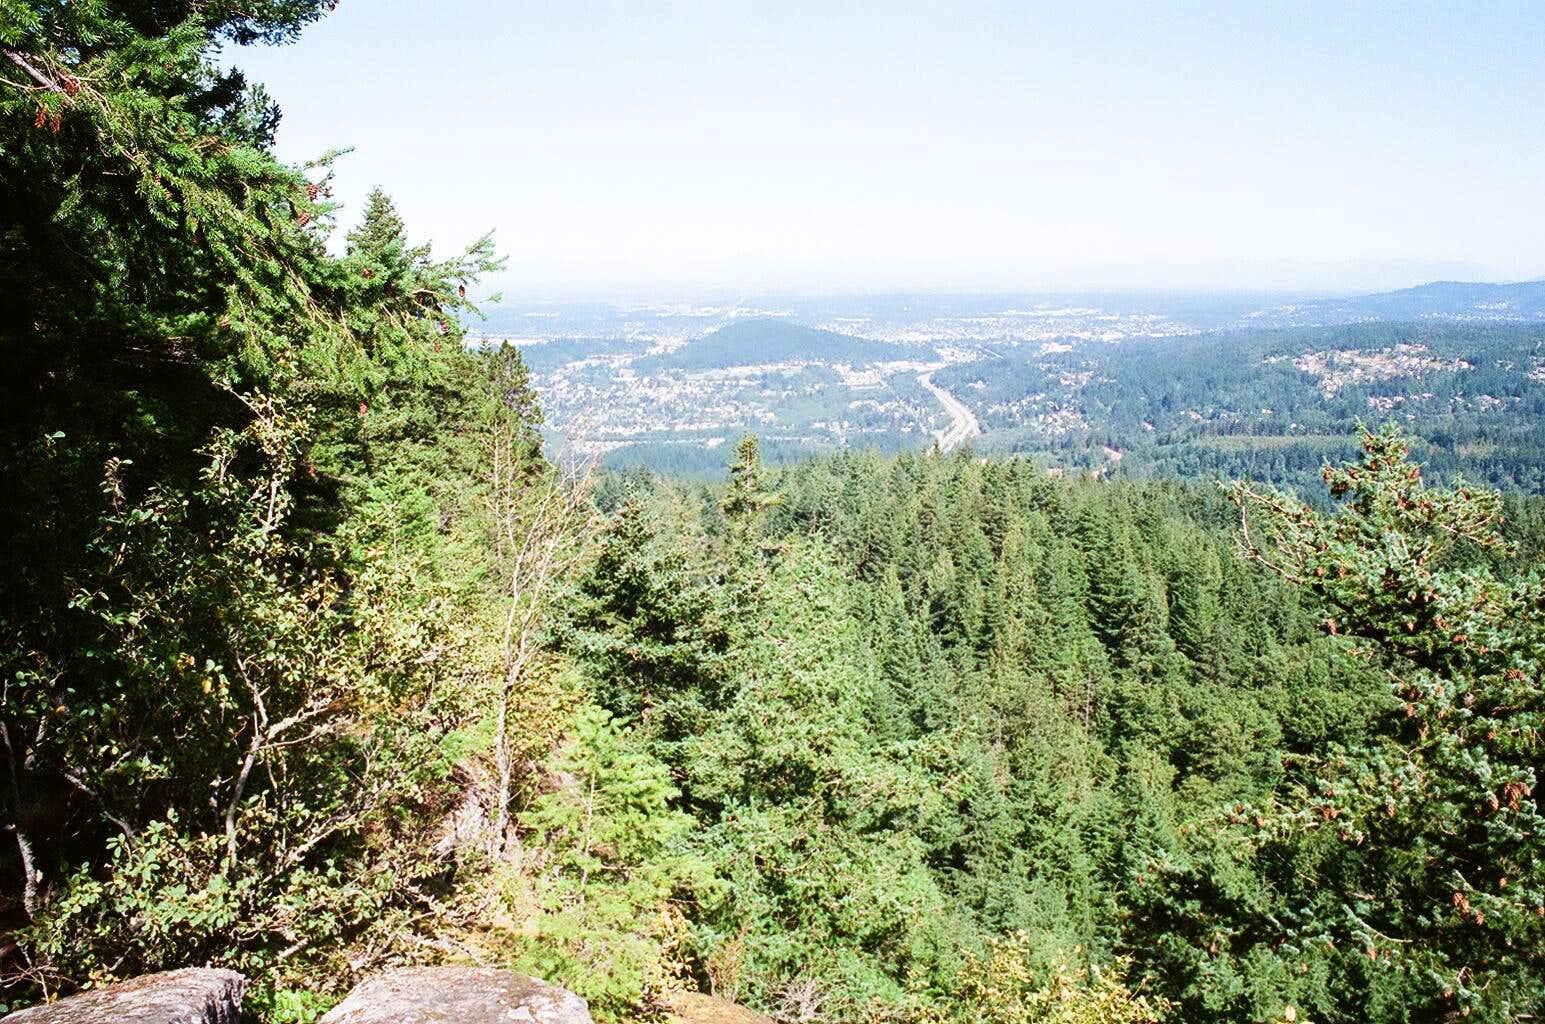 North Chuckanut Mtn. and Hush Hush trail.